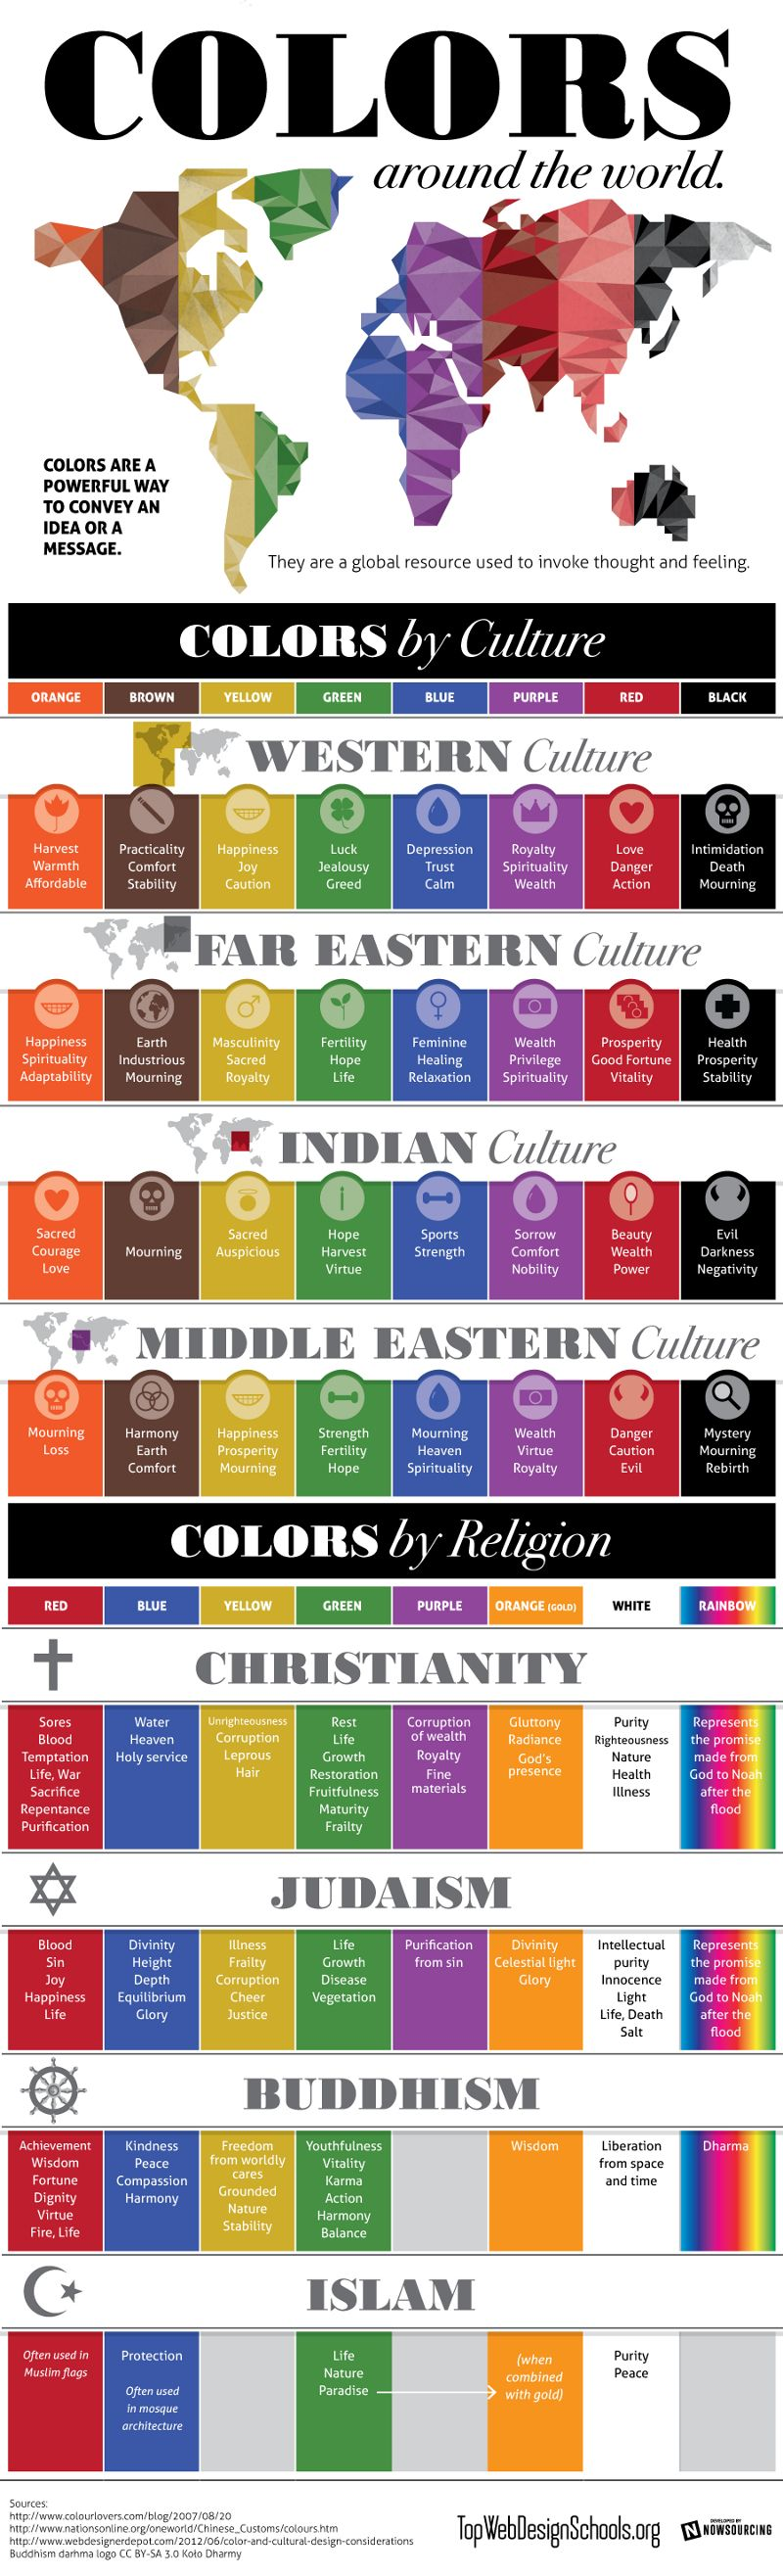 Colors And Their Meanings what colors mean in different cultures | culture, psychology and